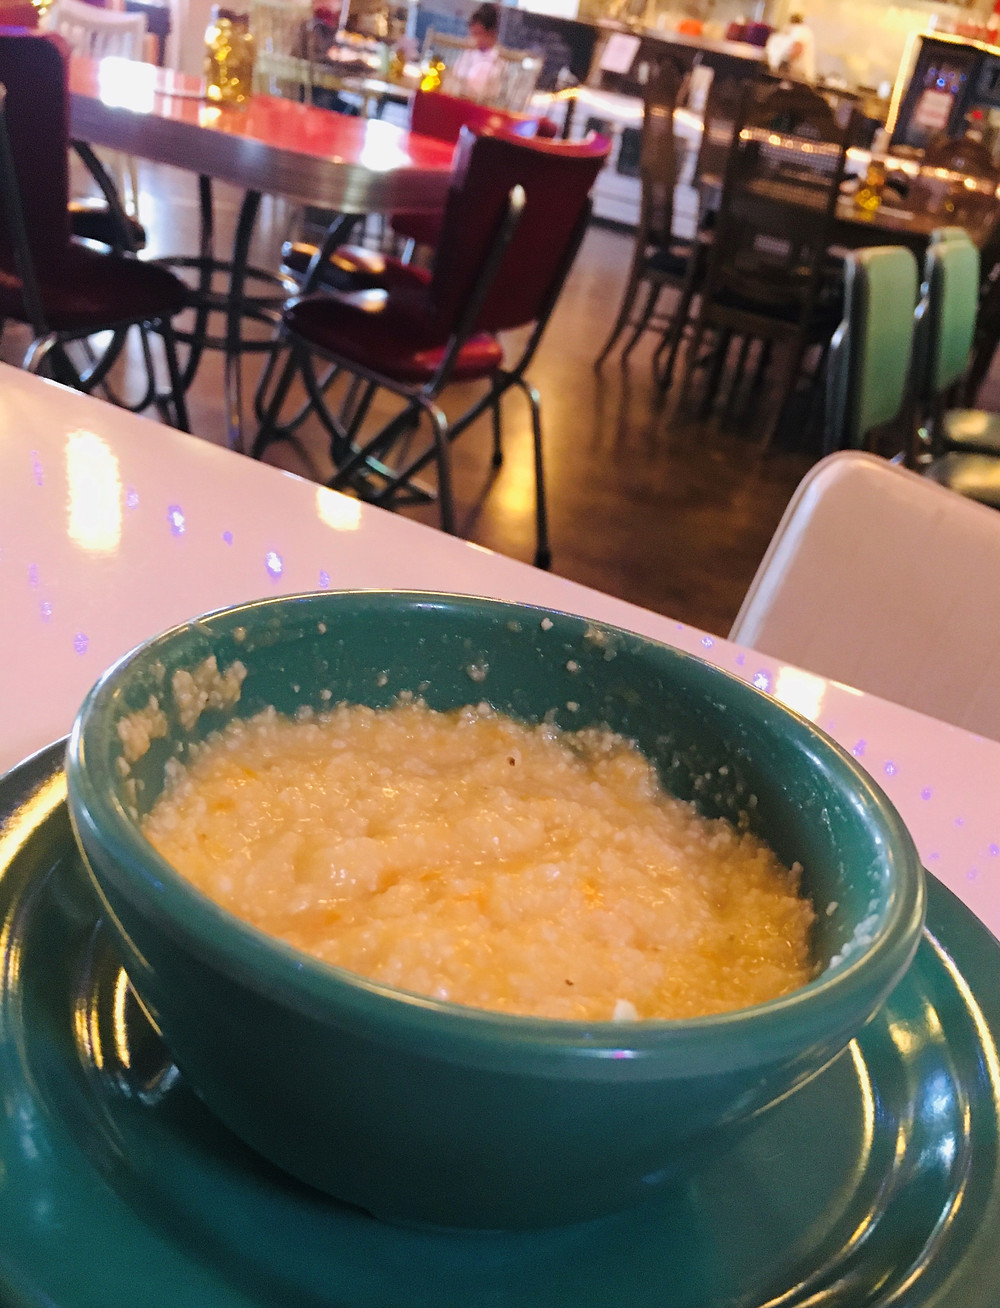 Cheesy Grits from Cafe Appalachia